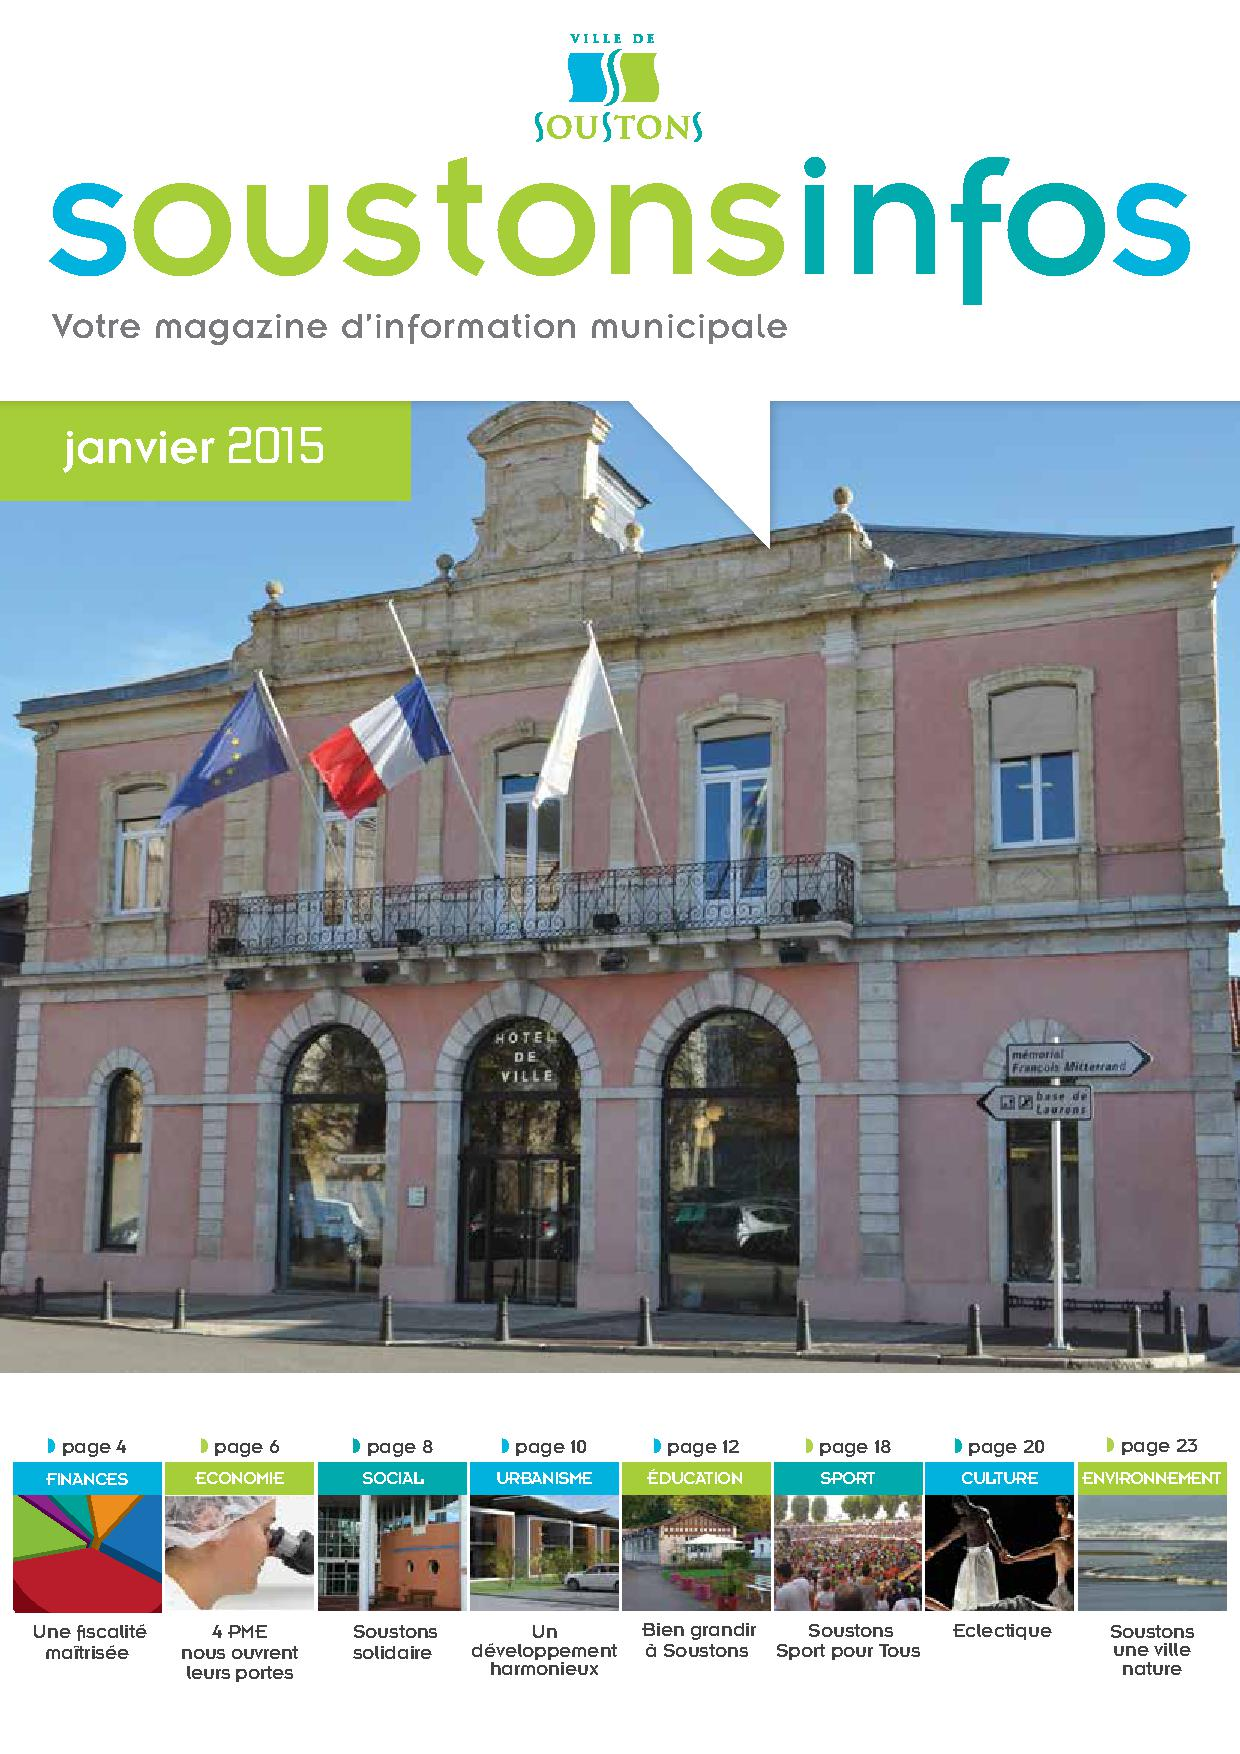 SOUSTONS INFOS janvier 2015